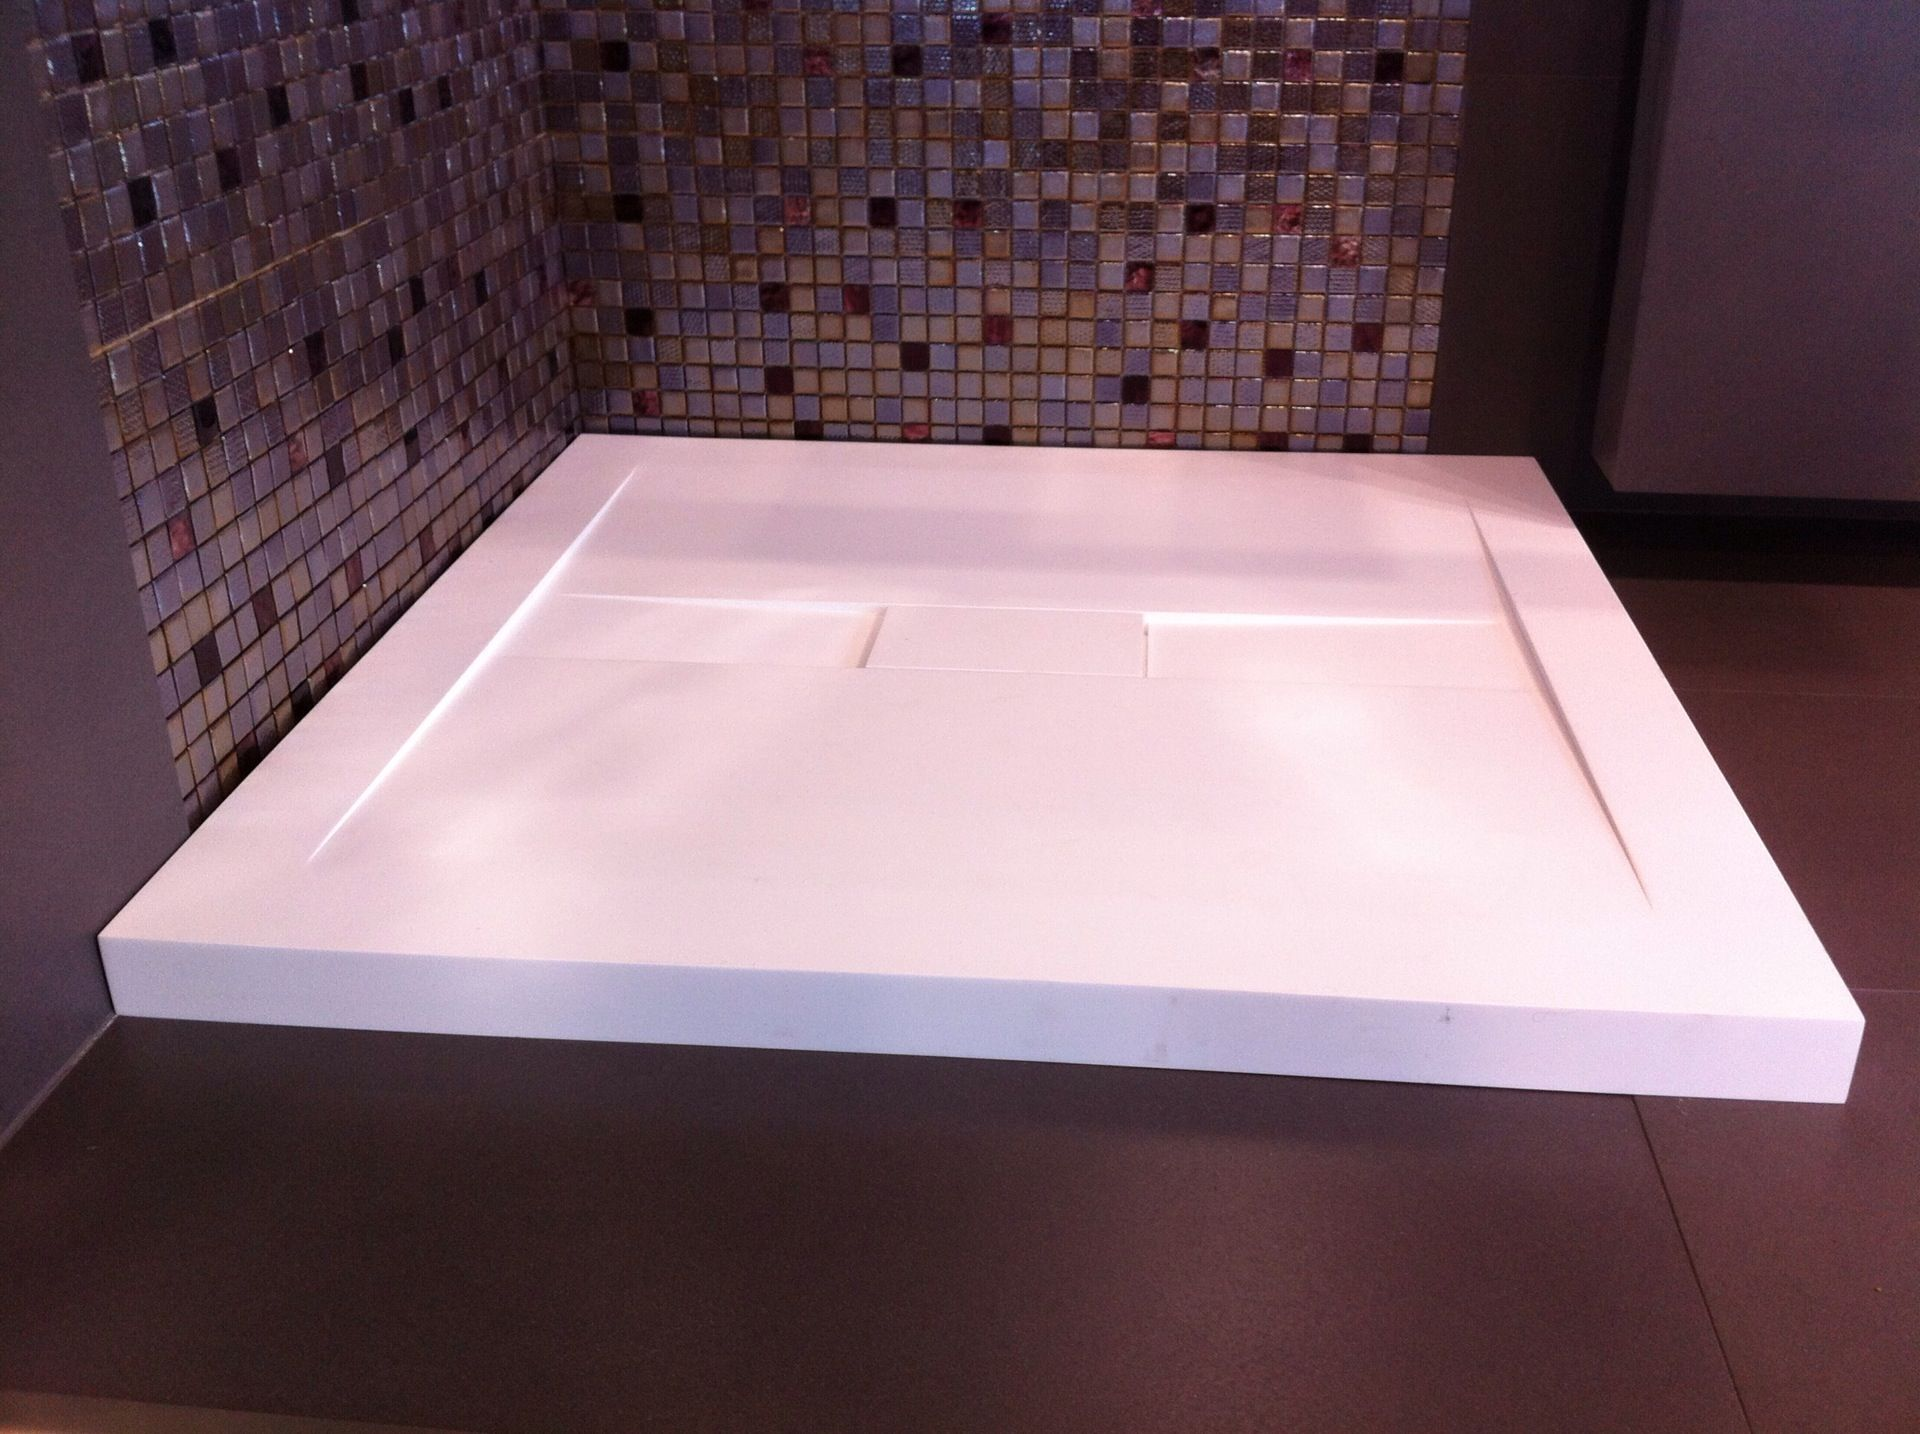 Description: Shower Tray Material: Solid Surfaces White Matt Model:  Solidslim Code: 1007003